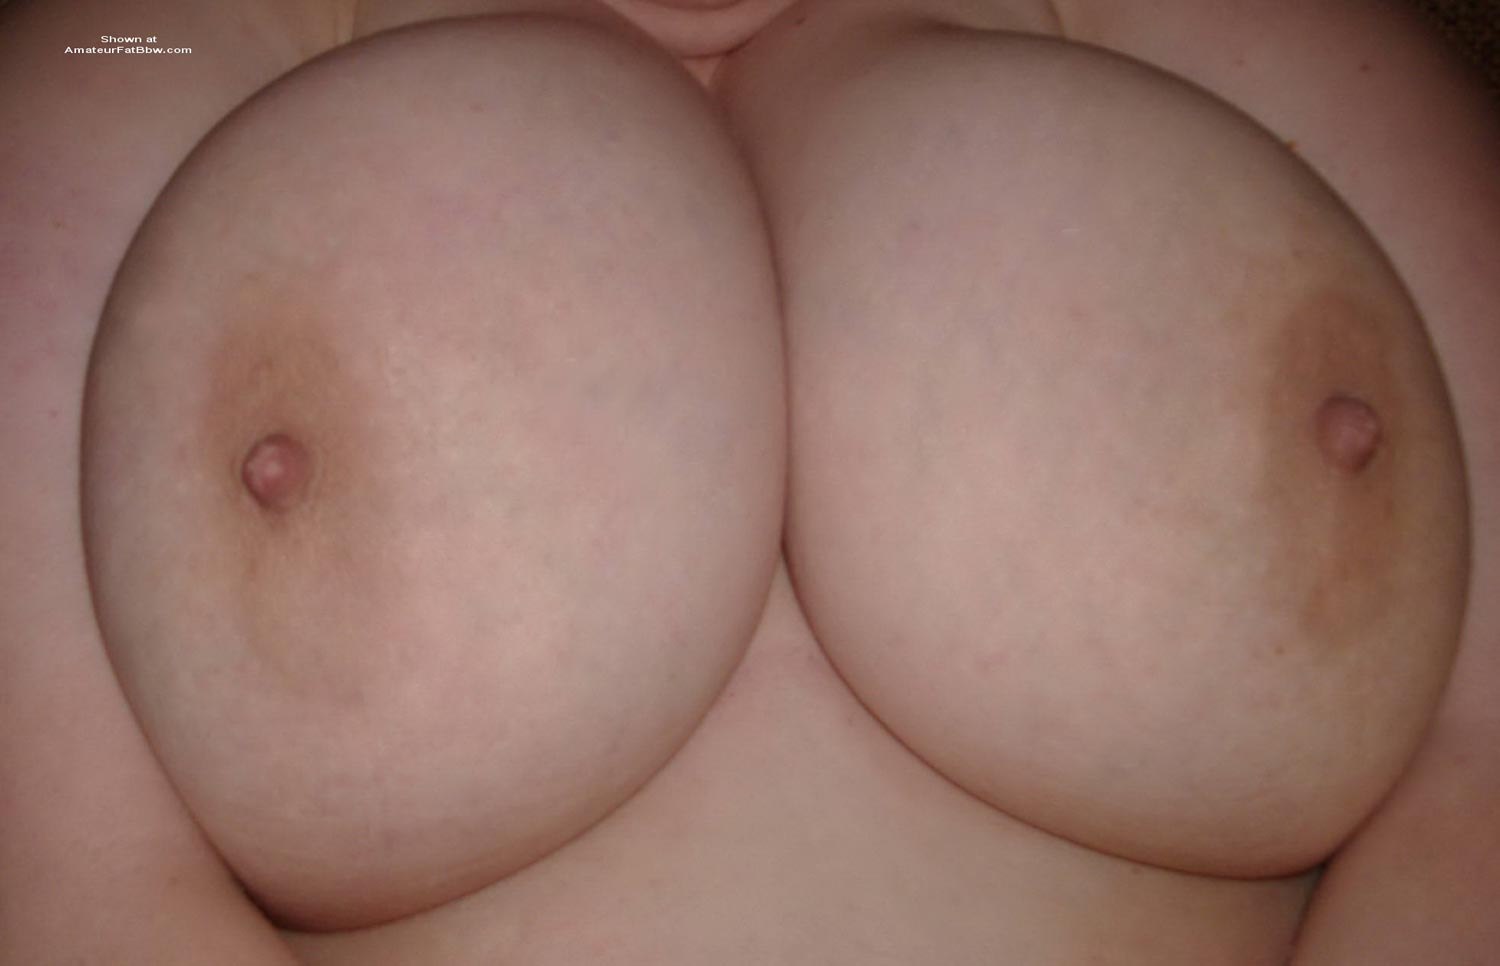 Remarkable, the Chubby bbw amateur big tits